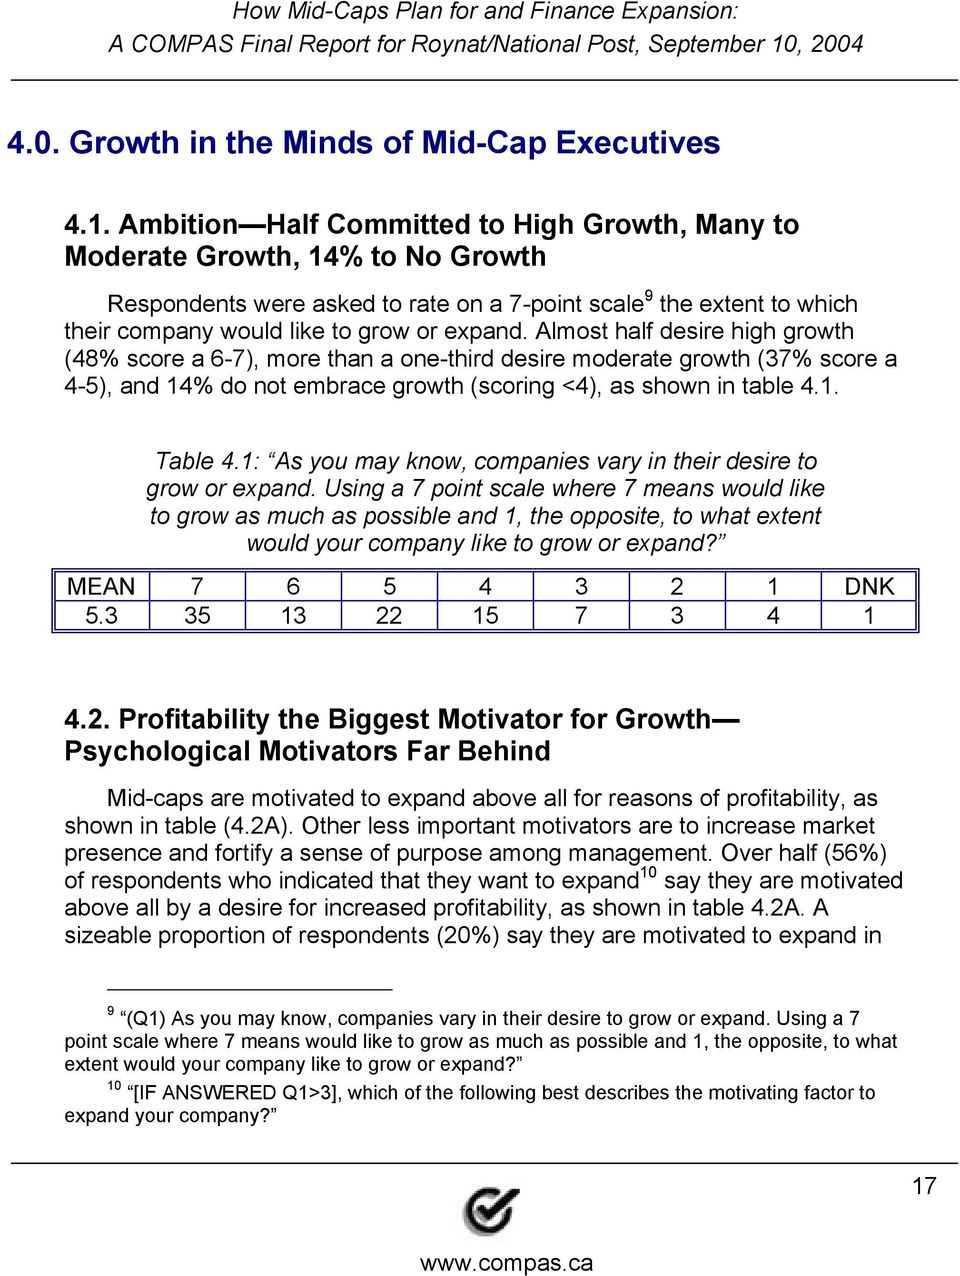 Almost half desire high growth (48 score a 6-7), more than a one-third desire moderate growth (37 score a 4-5), and 14 do not embrace growth (scoring <4), as shown in table 4.1. Table 4.